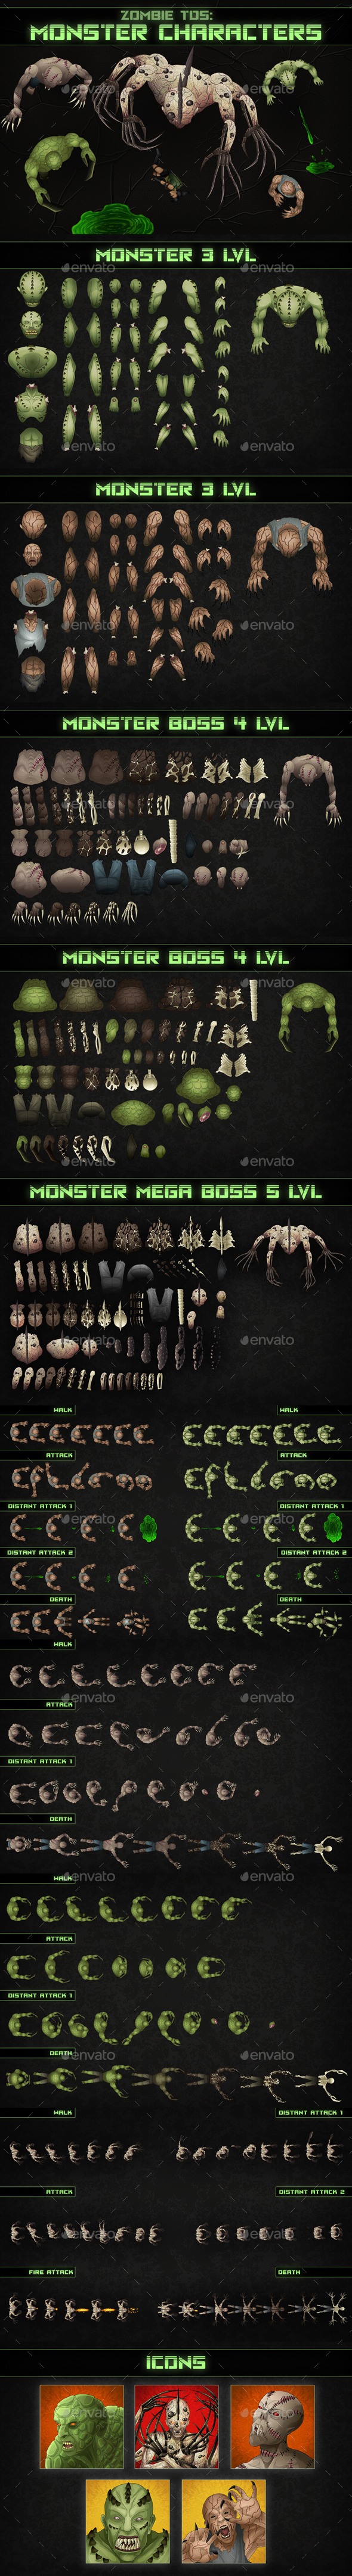 Top-Down Shooter: Monster - Sprites Game Assets